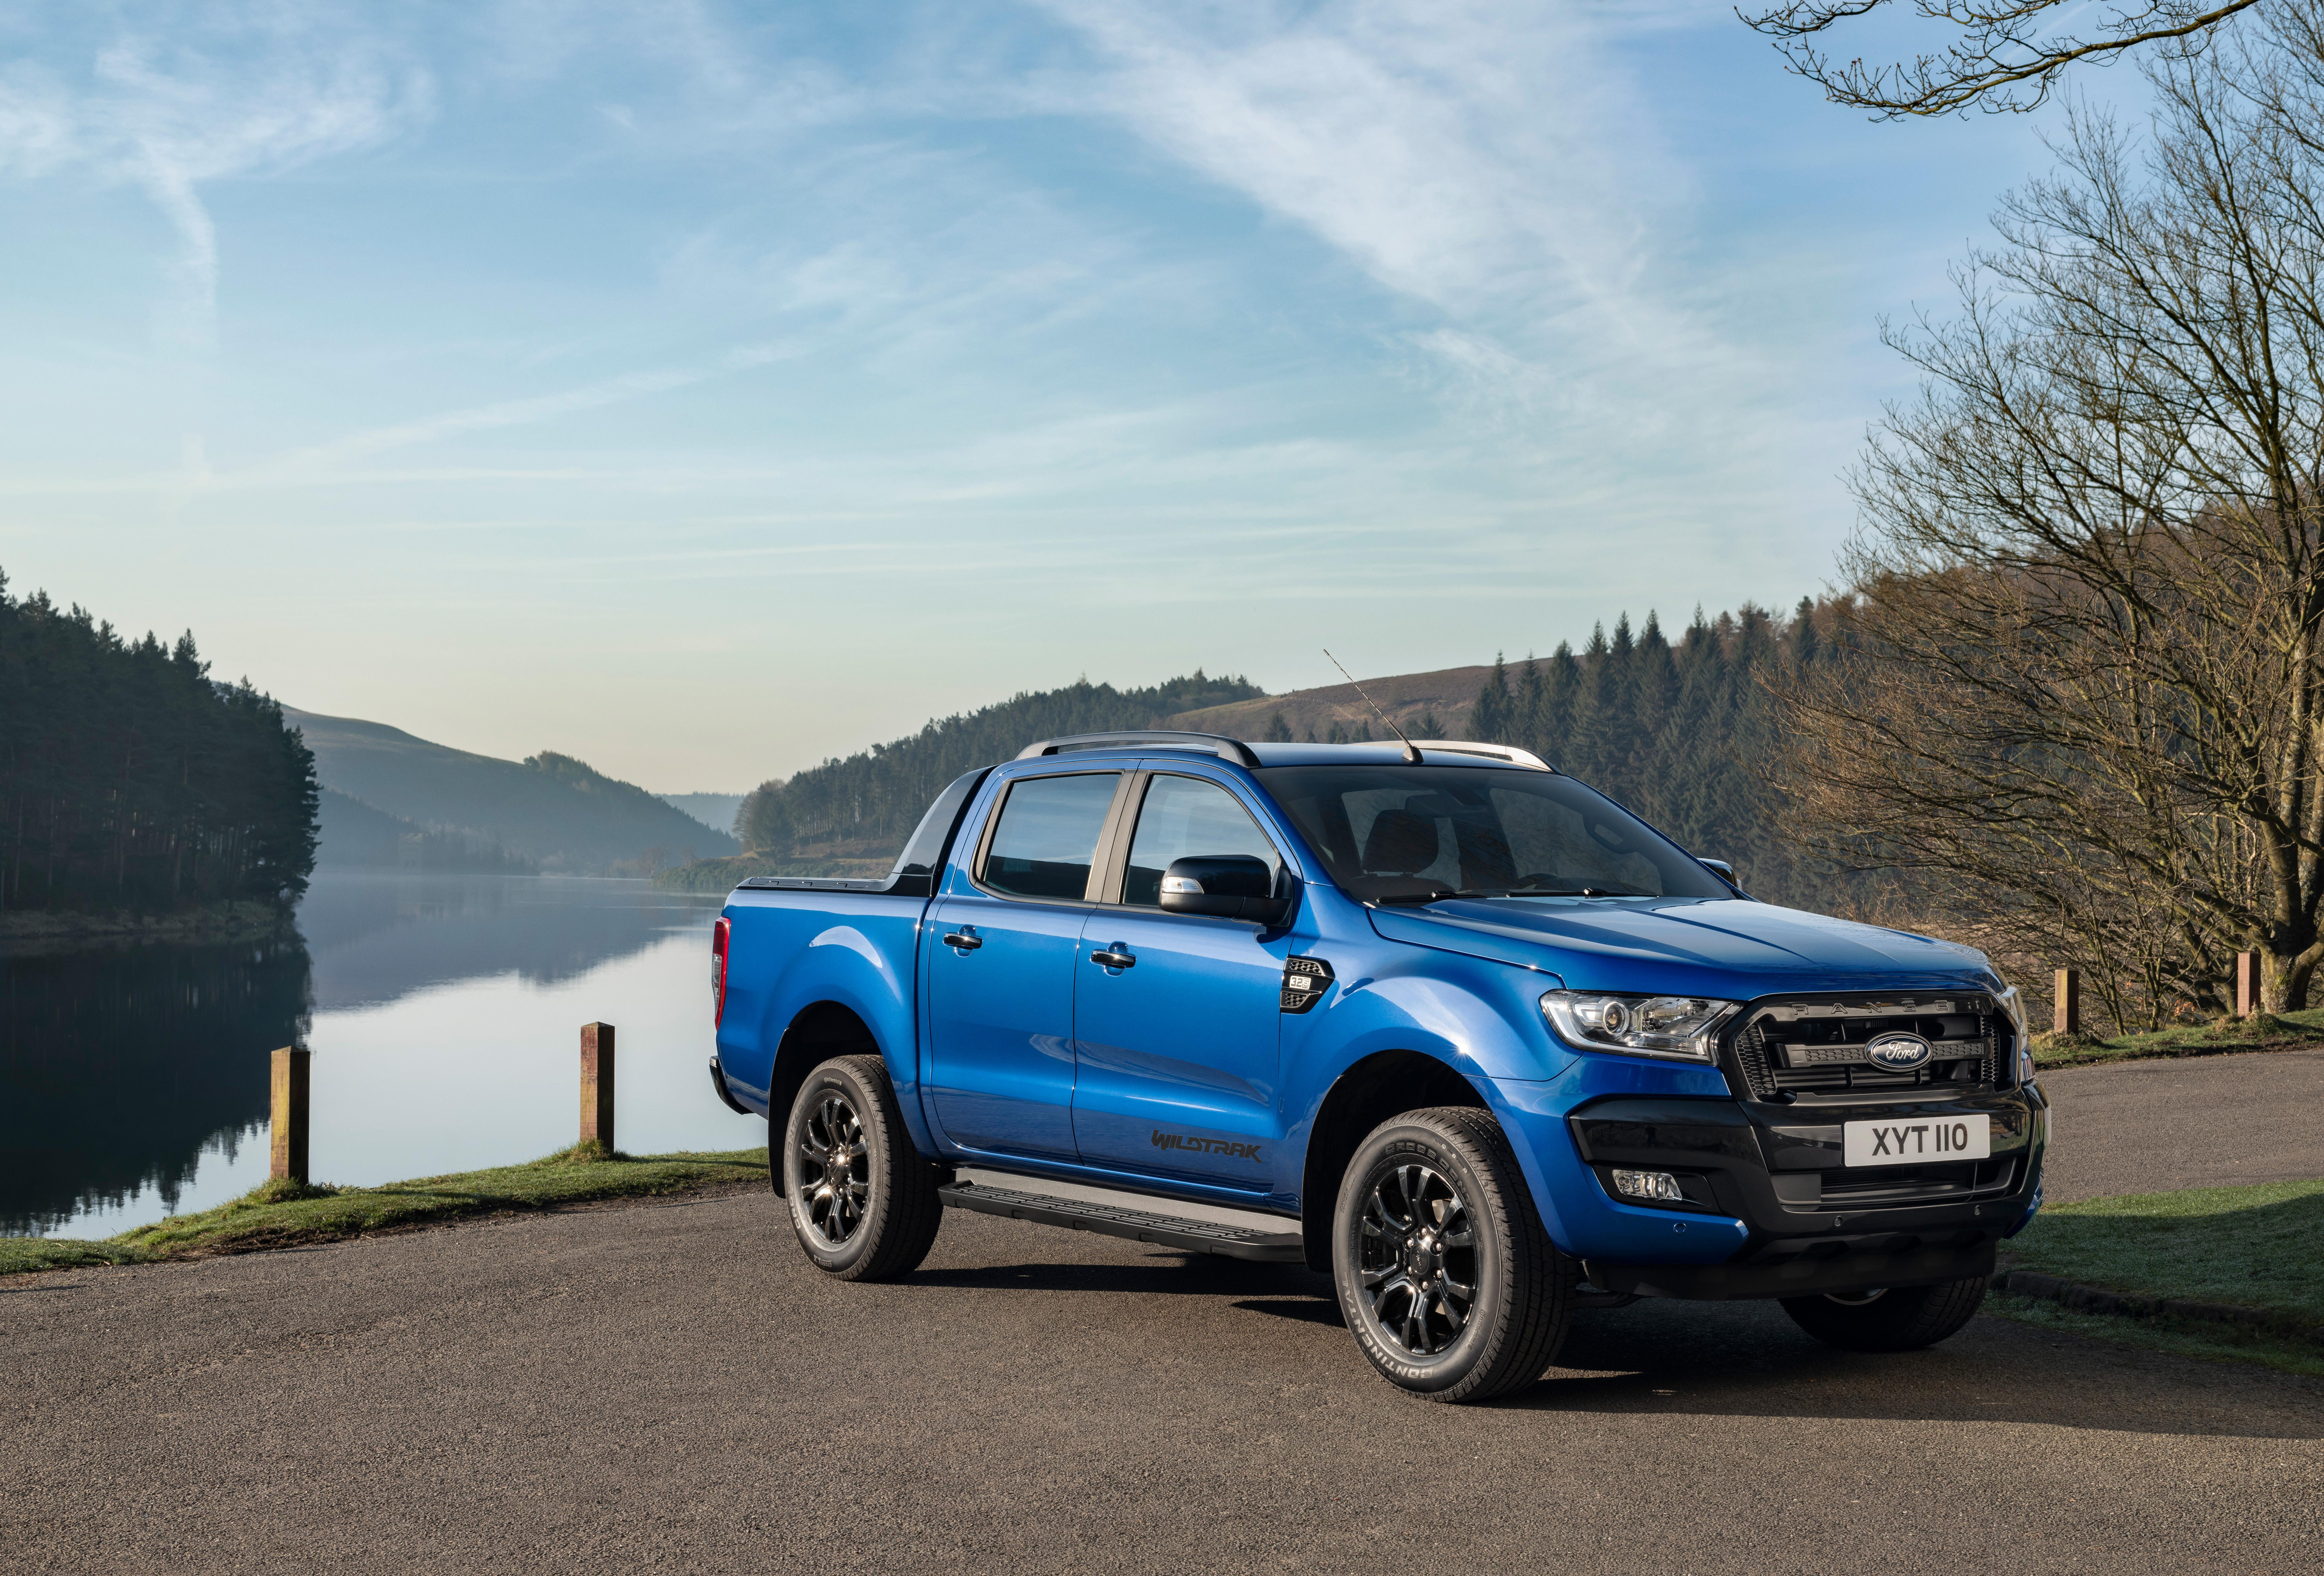 2018 Ford Ranger Wildtrak X Wallpaper And Image Gallery